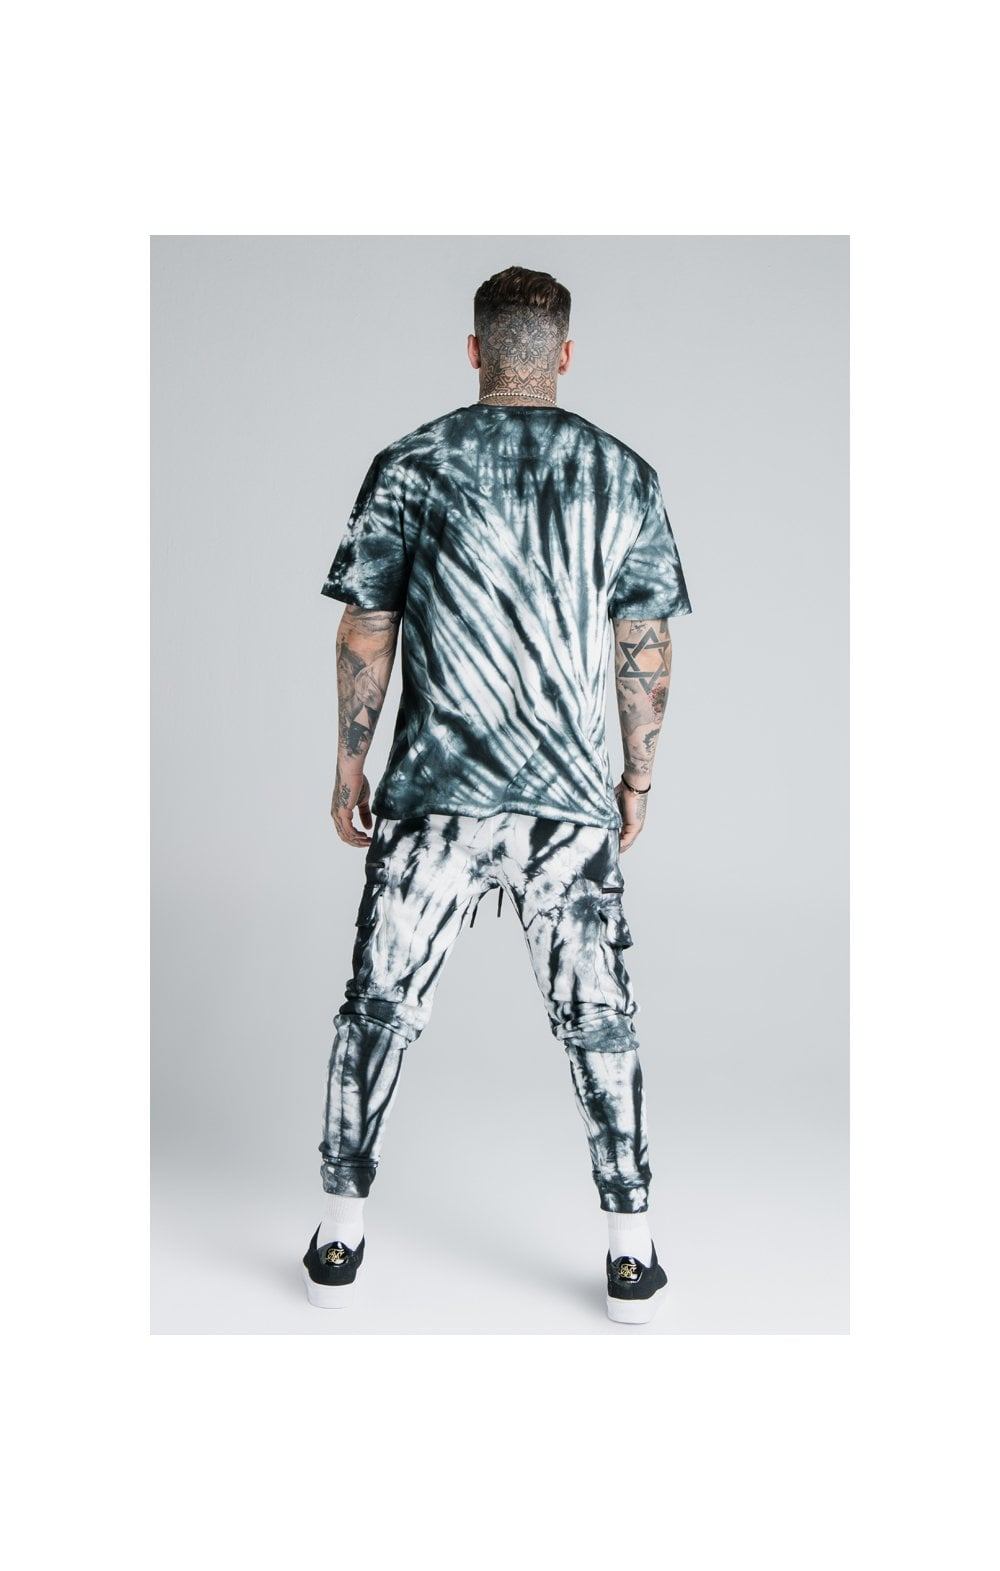 Load image into Gallery viewer, SikSilk X Steve Aoki S/S Oversize Essential Tee – Black & White Tie Dye (7)